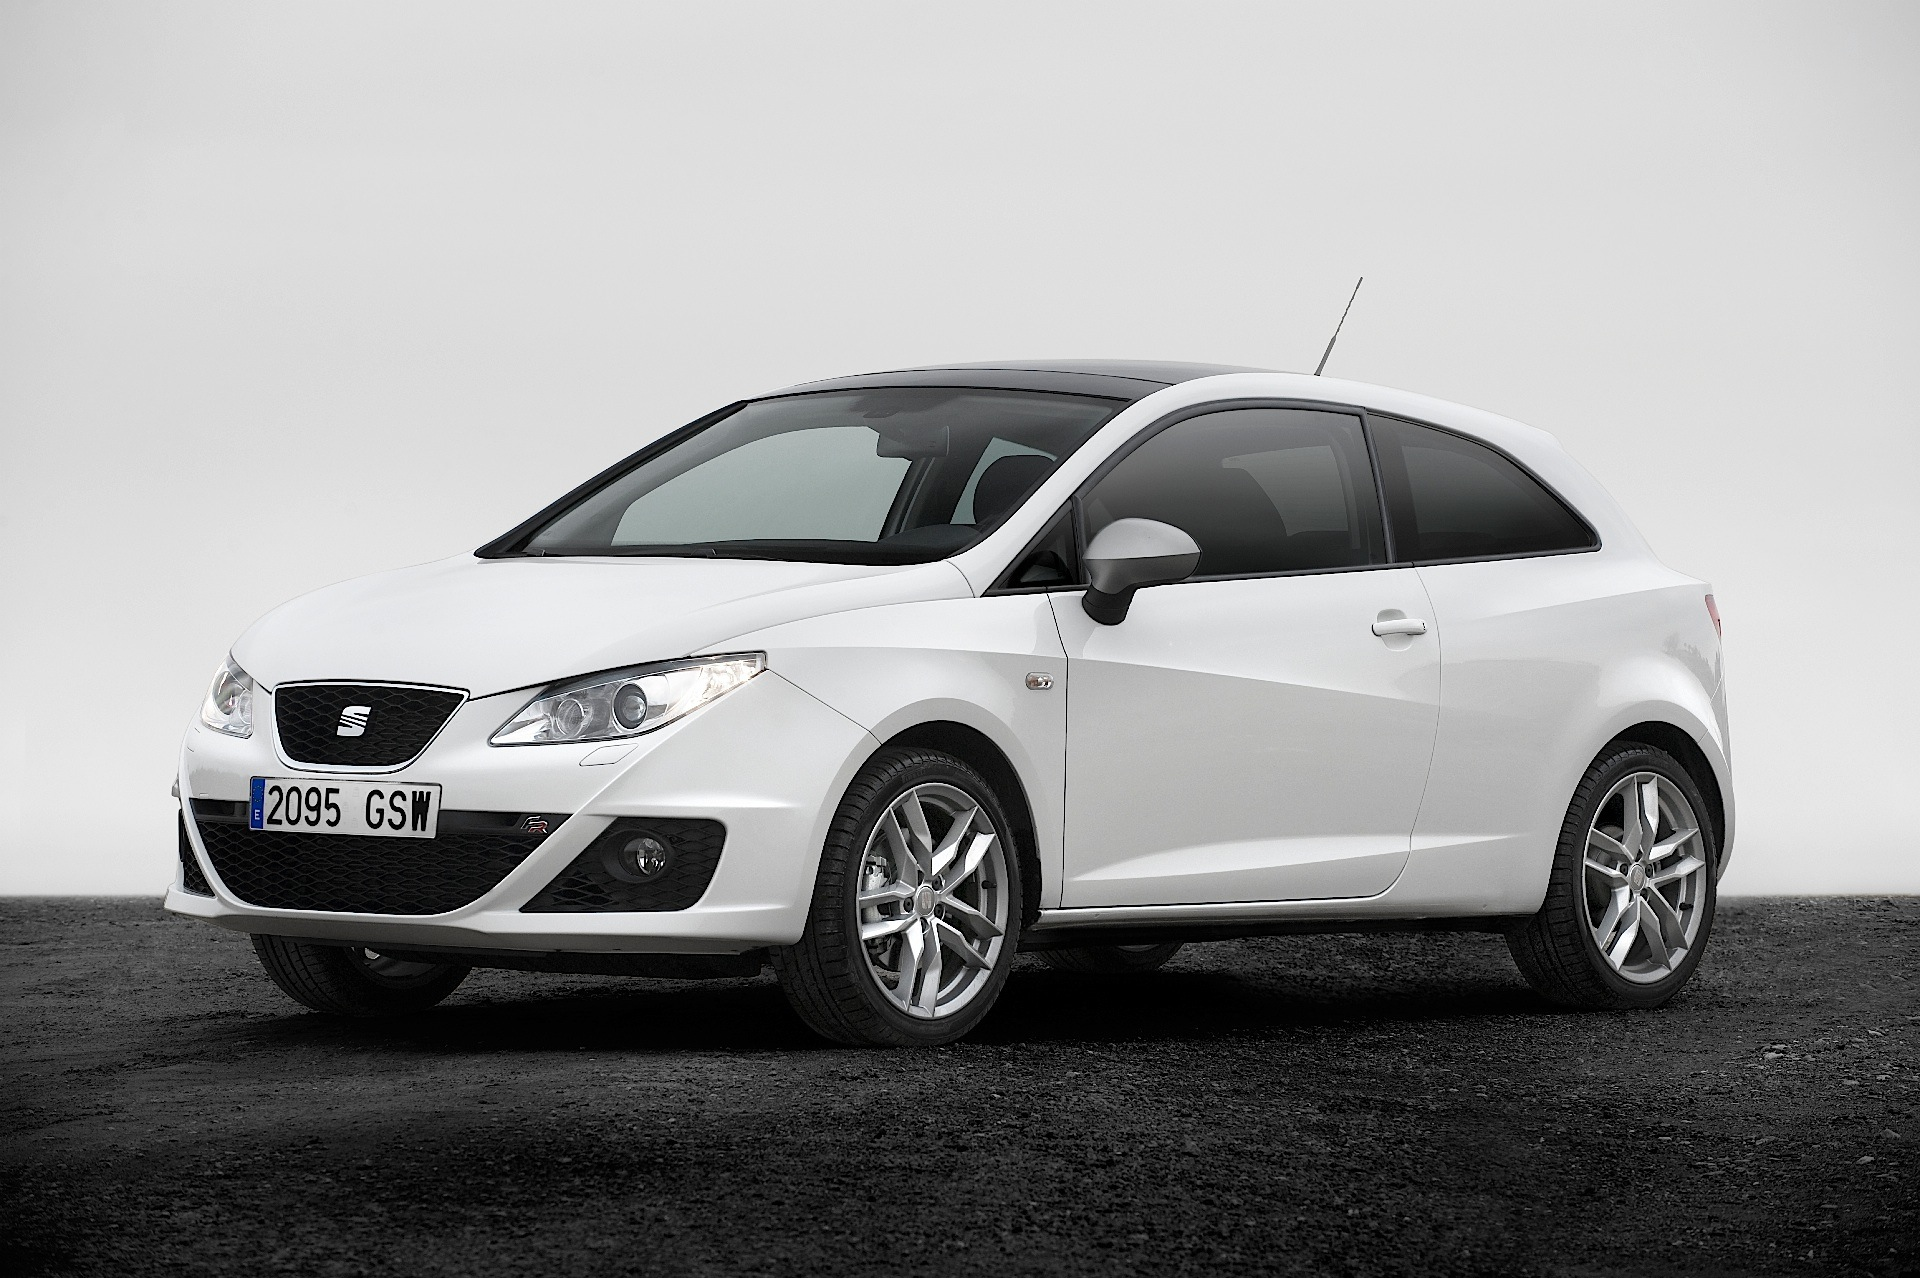 seat ibiza fr sport coupe sc specs photos 2009 2010 2011 2012 2013 2014 2015 2016. Black Bedroom Furniture Sets. Home Design Ideas